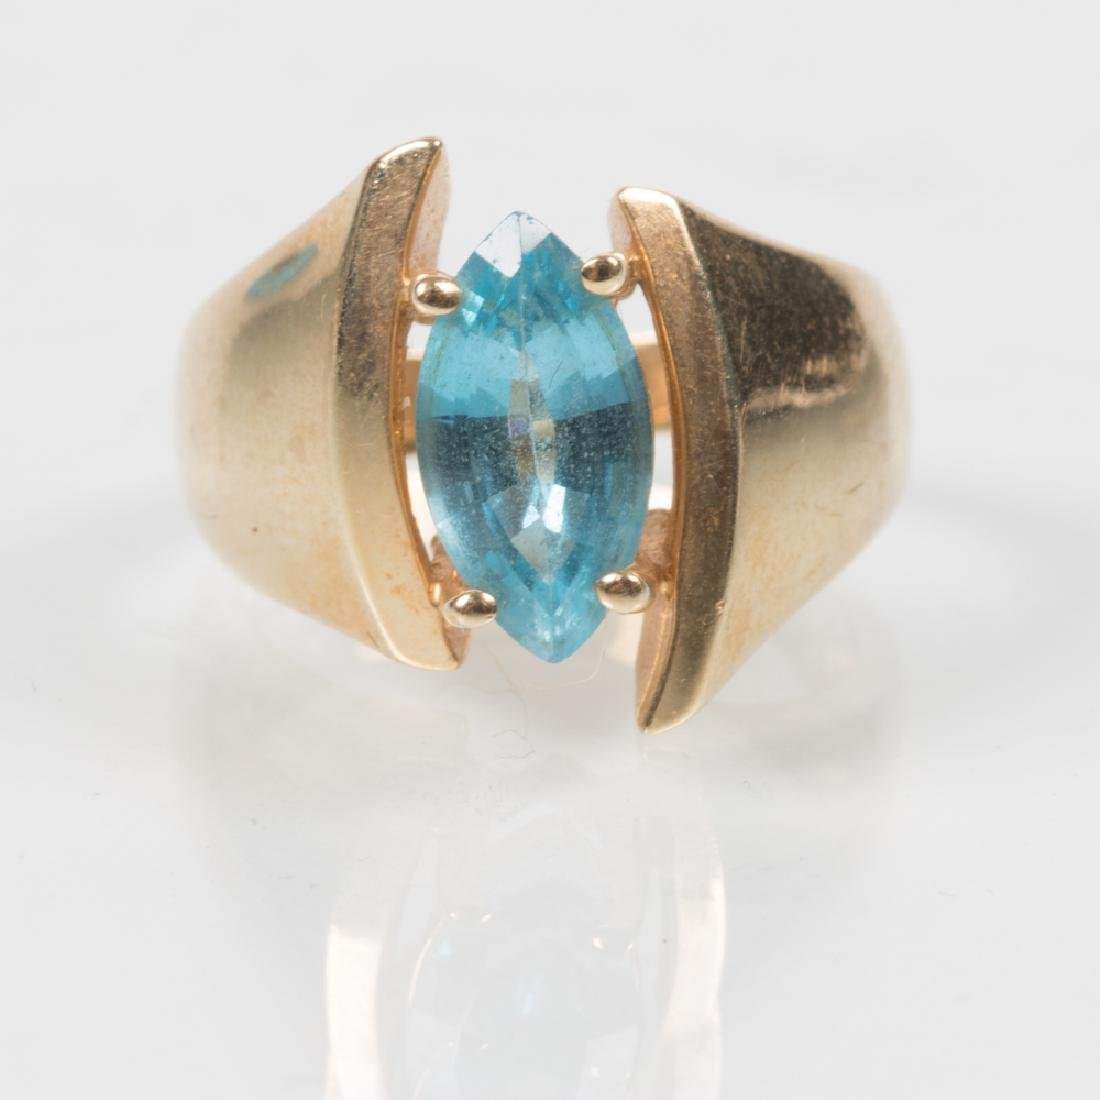 A 14kt. Yellow Gold and Blue Topaz Ring,